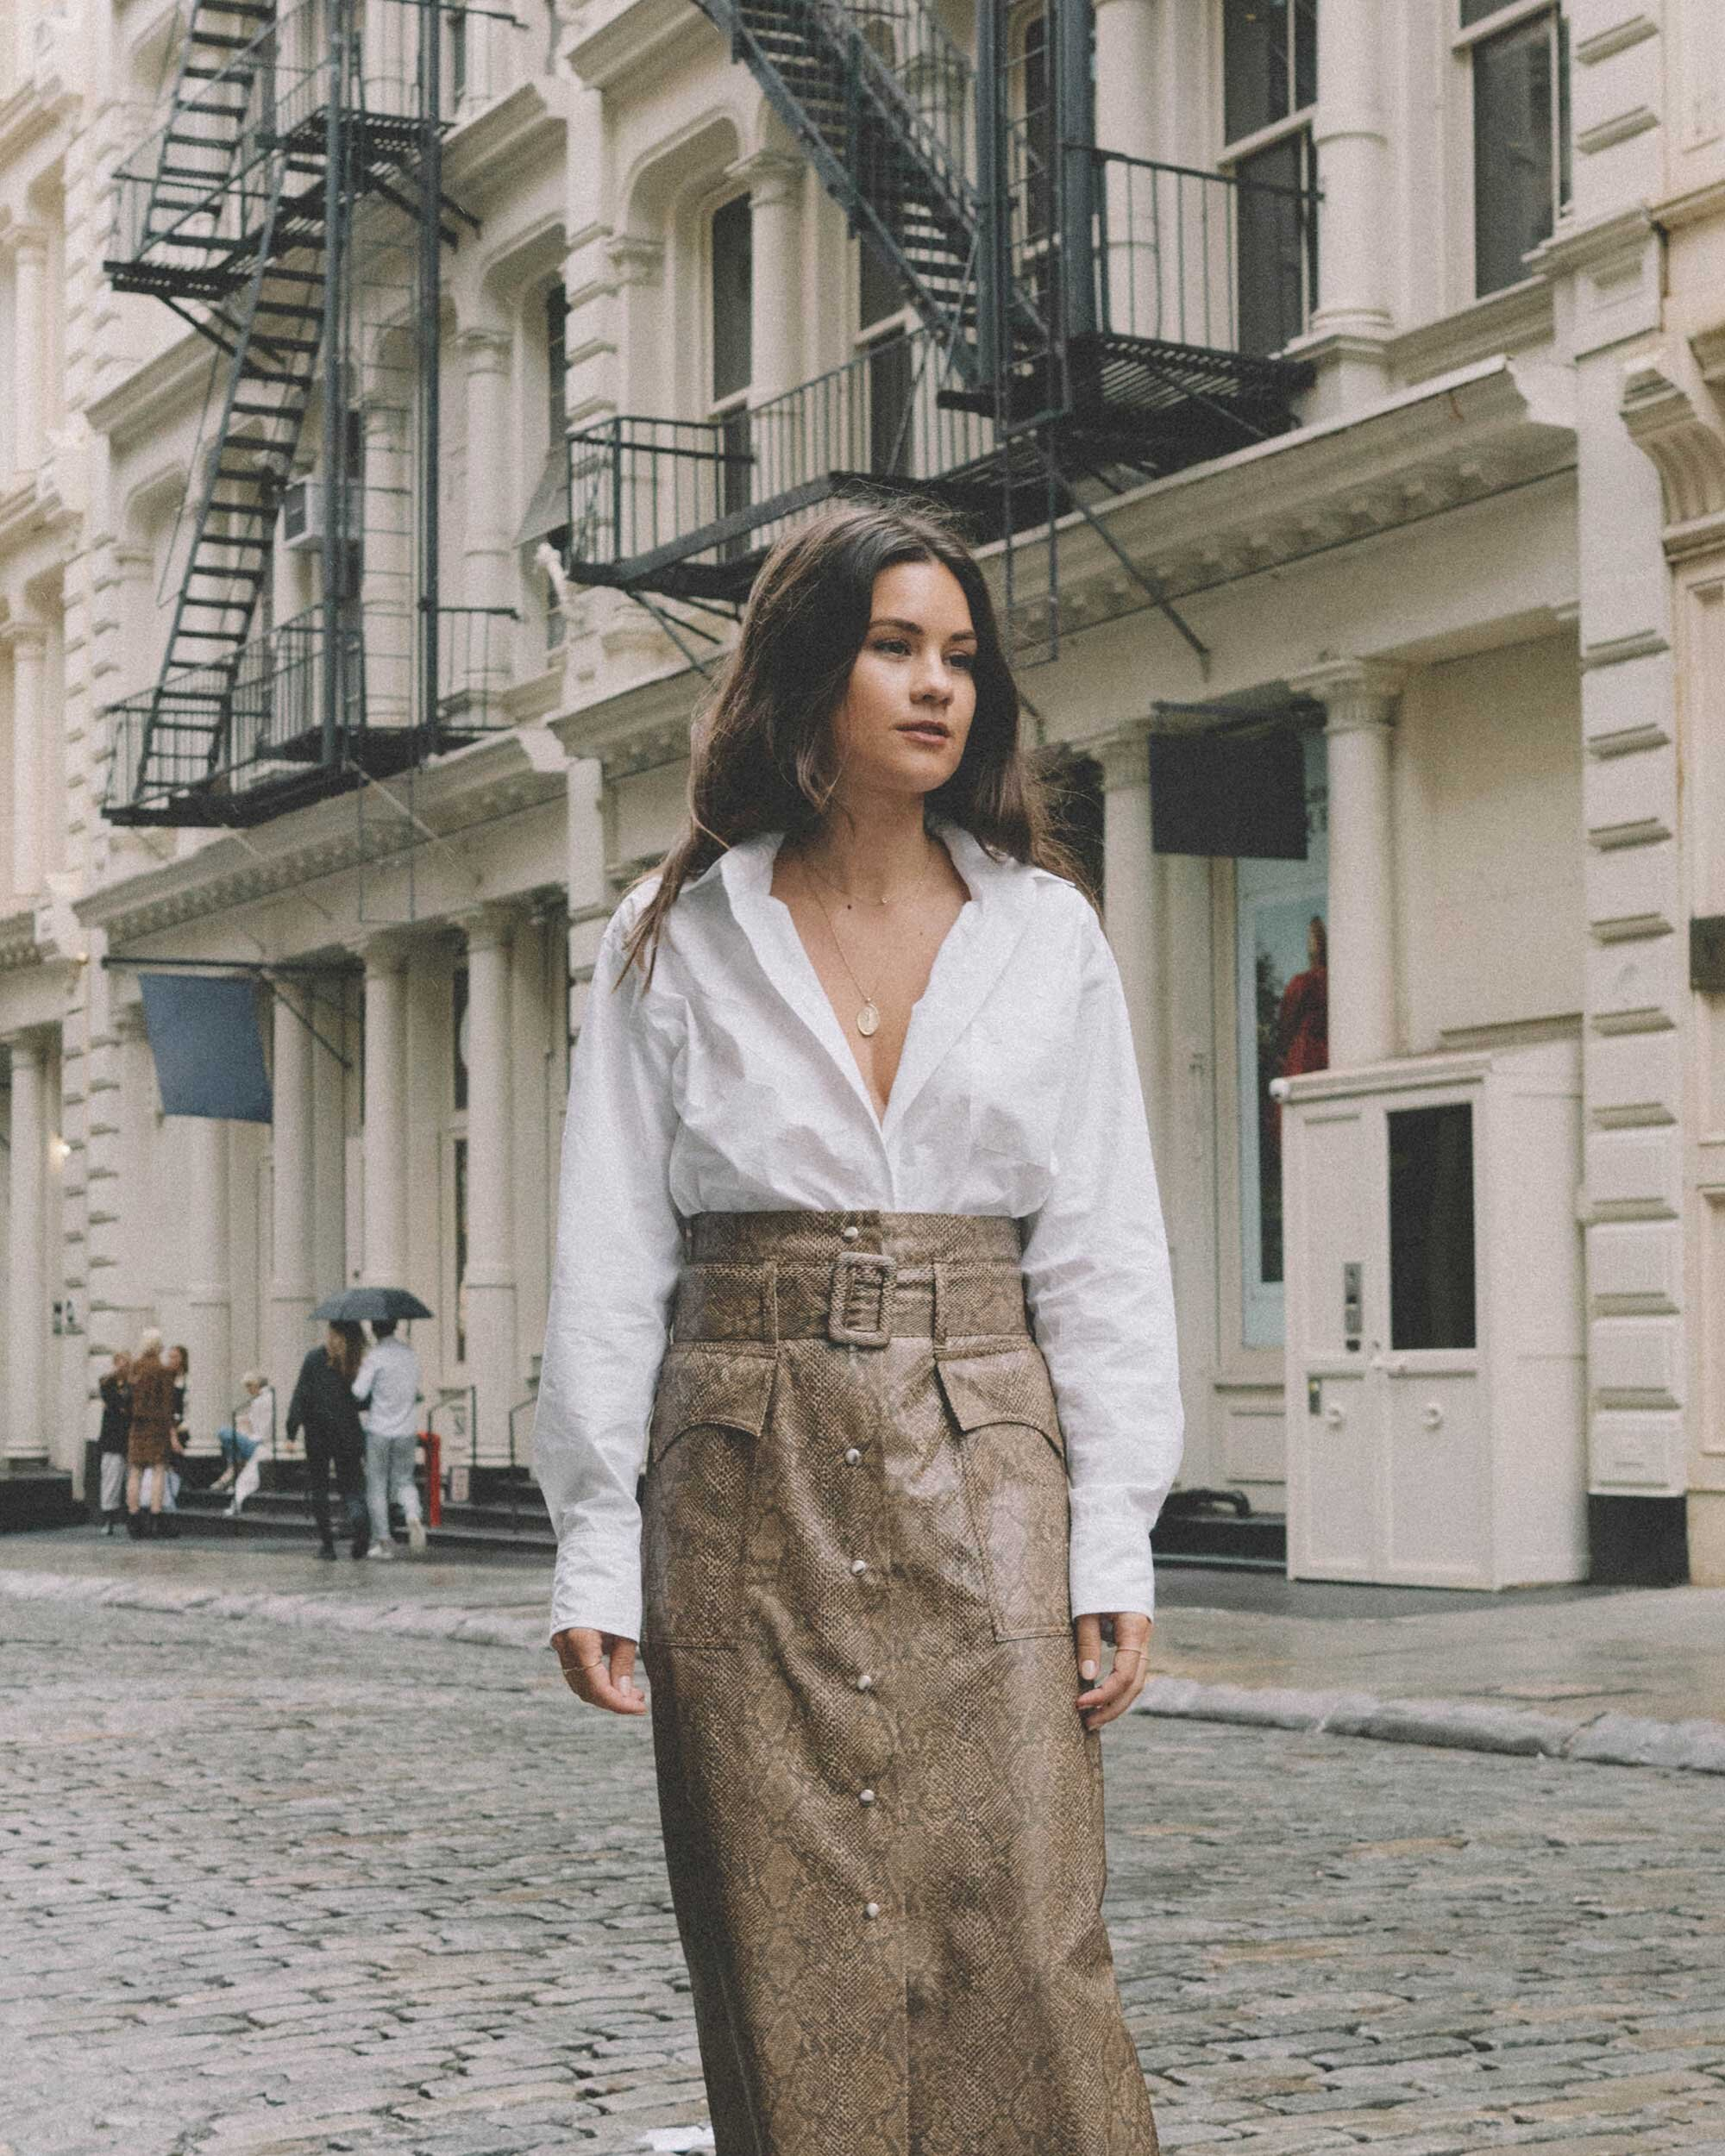 NYFW with Farfetch - Feeling fall in this look from Farfetch featuring Nanushka Aarohi python-print vegan leather midi skirt and Sies Marjan crinkle effect button-up shirt in Soho New York for fashion week.